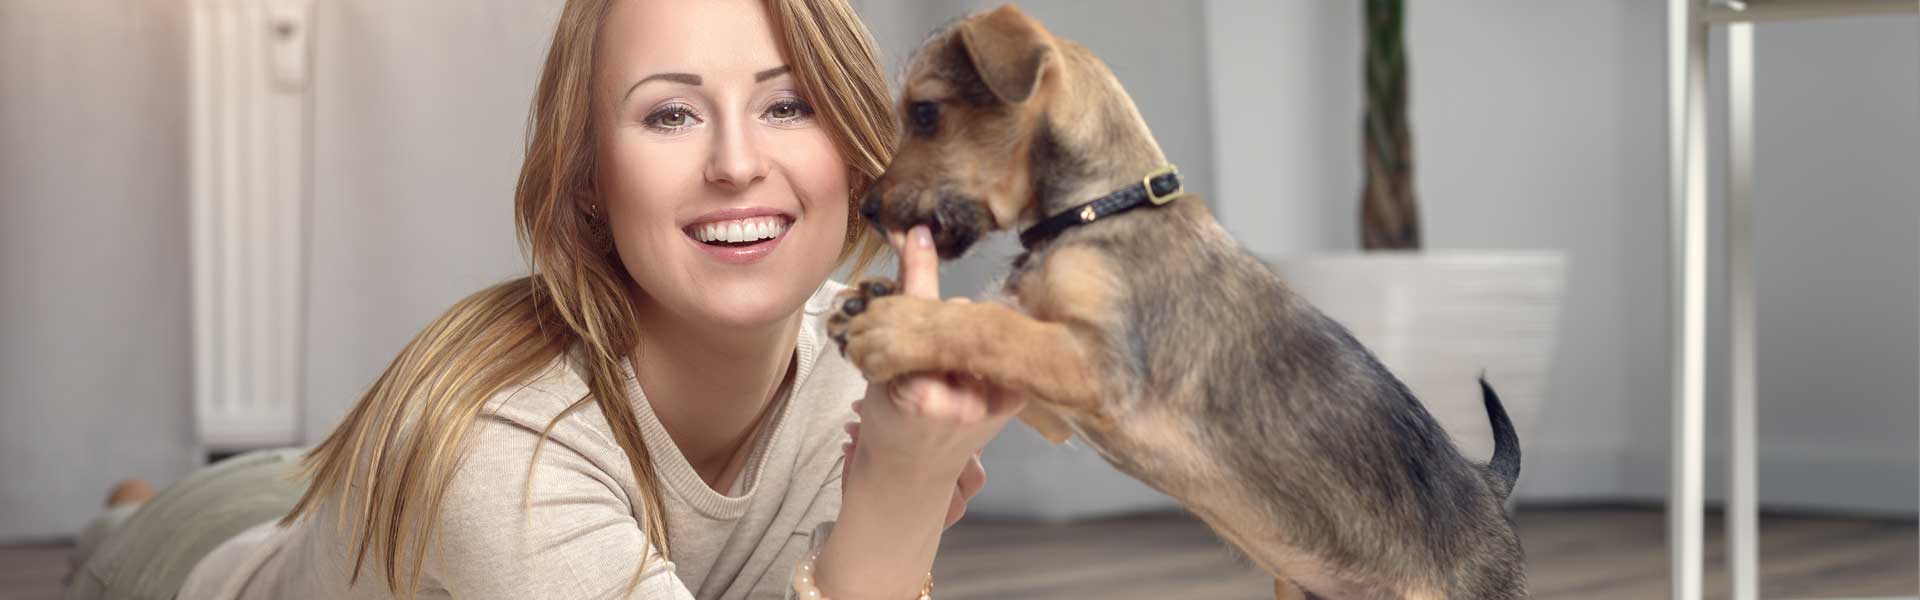 Picture of a puppy and a woman in living room